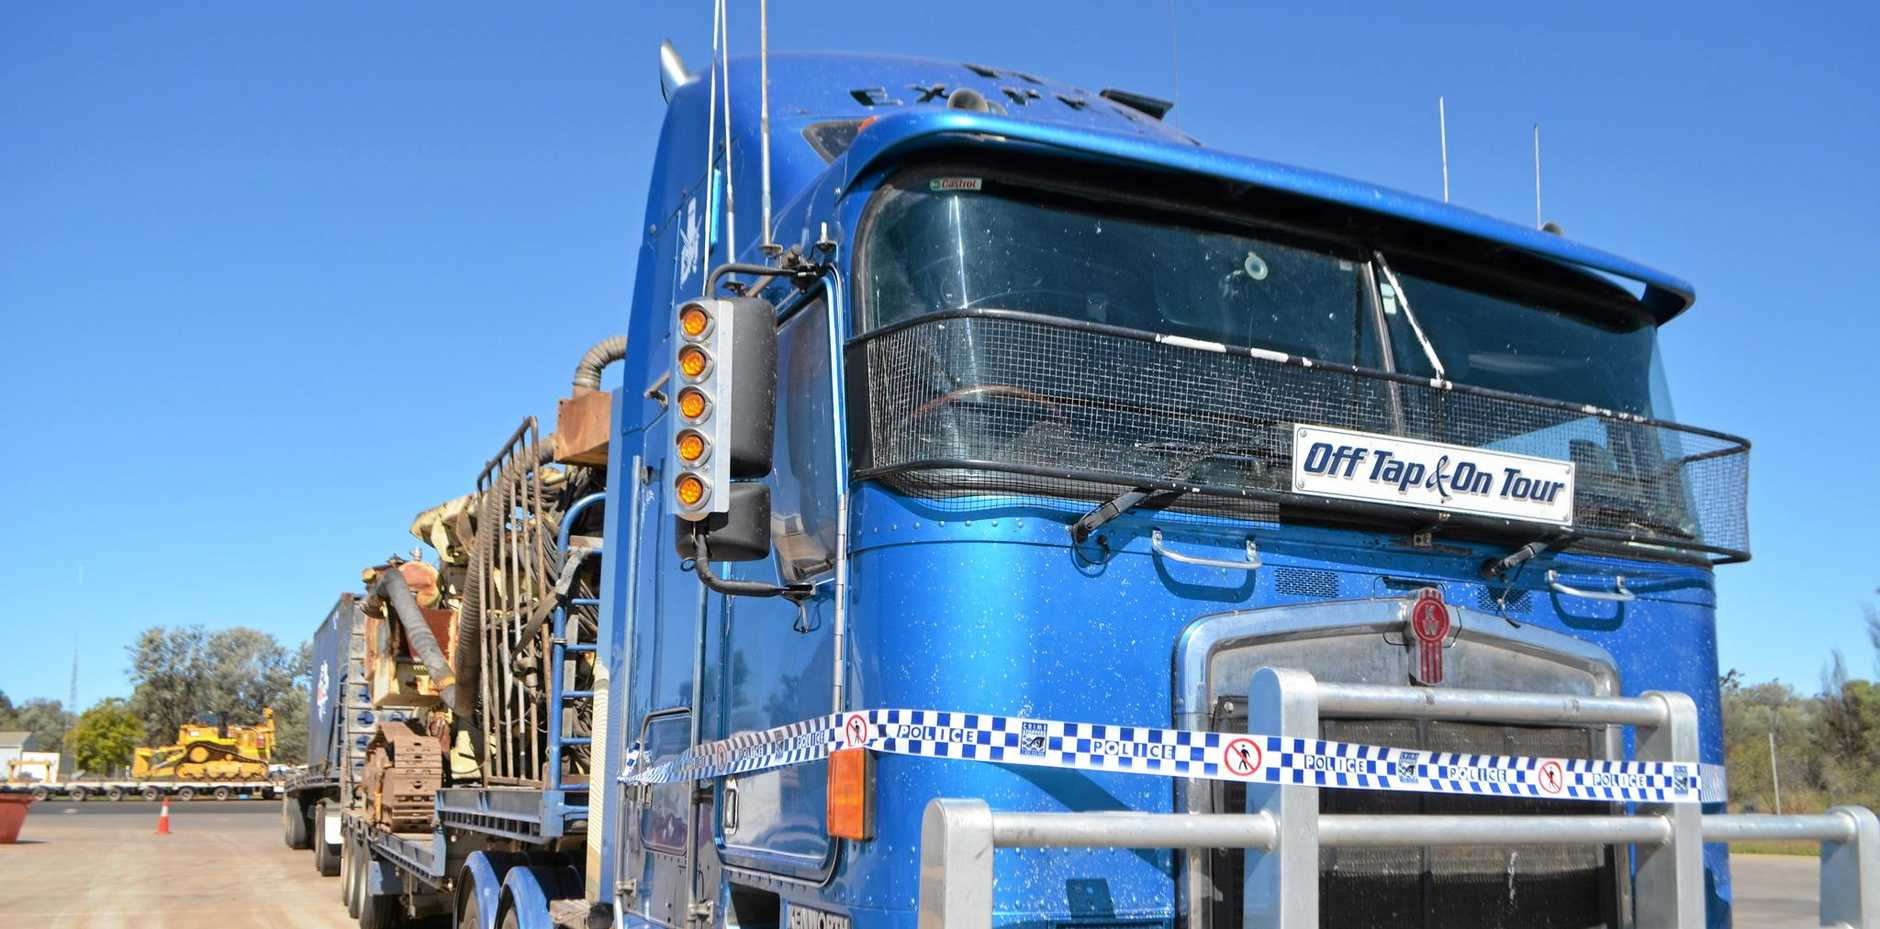 DIRTY RIG: The Butler's truck, in which they allegedly stole thousands of litres of fuel.